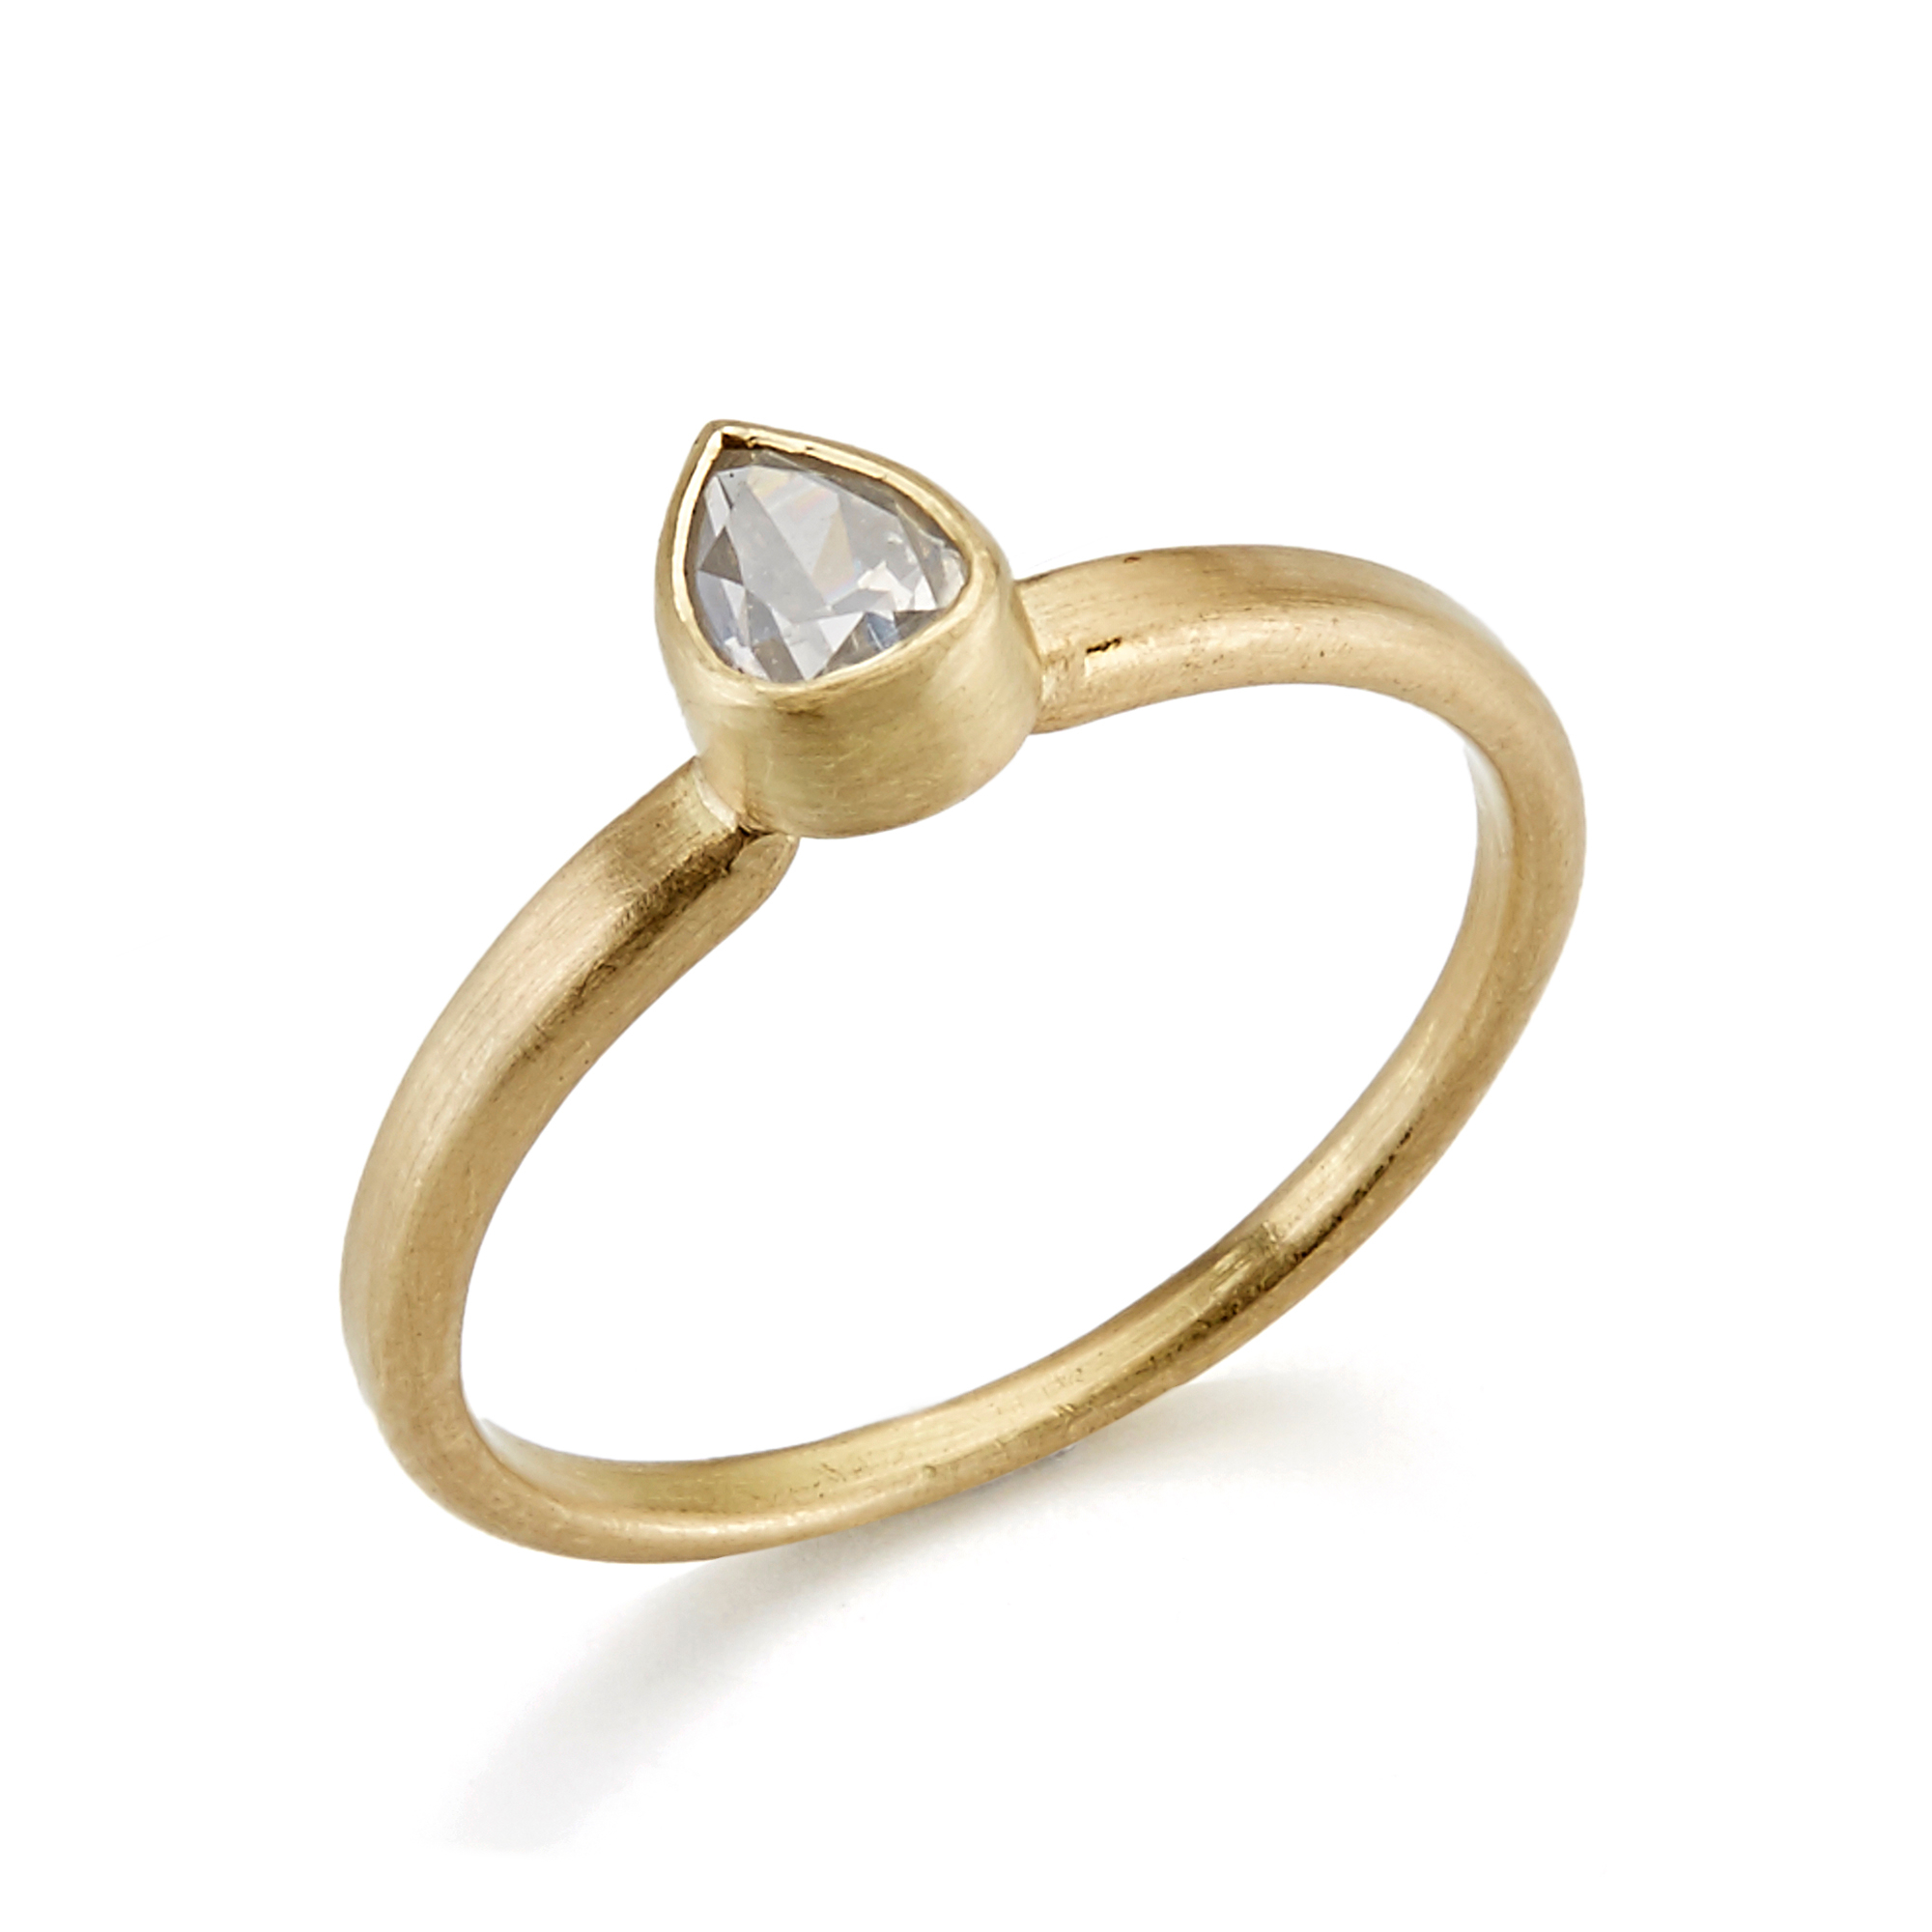 Monica Marcella Gray Diamond Teardrop Ring